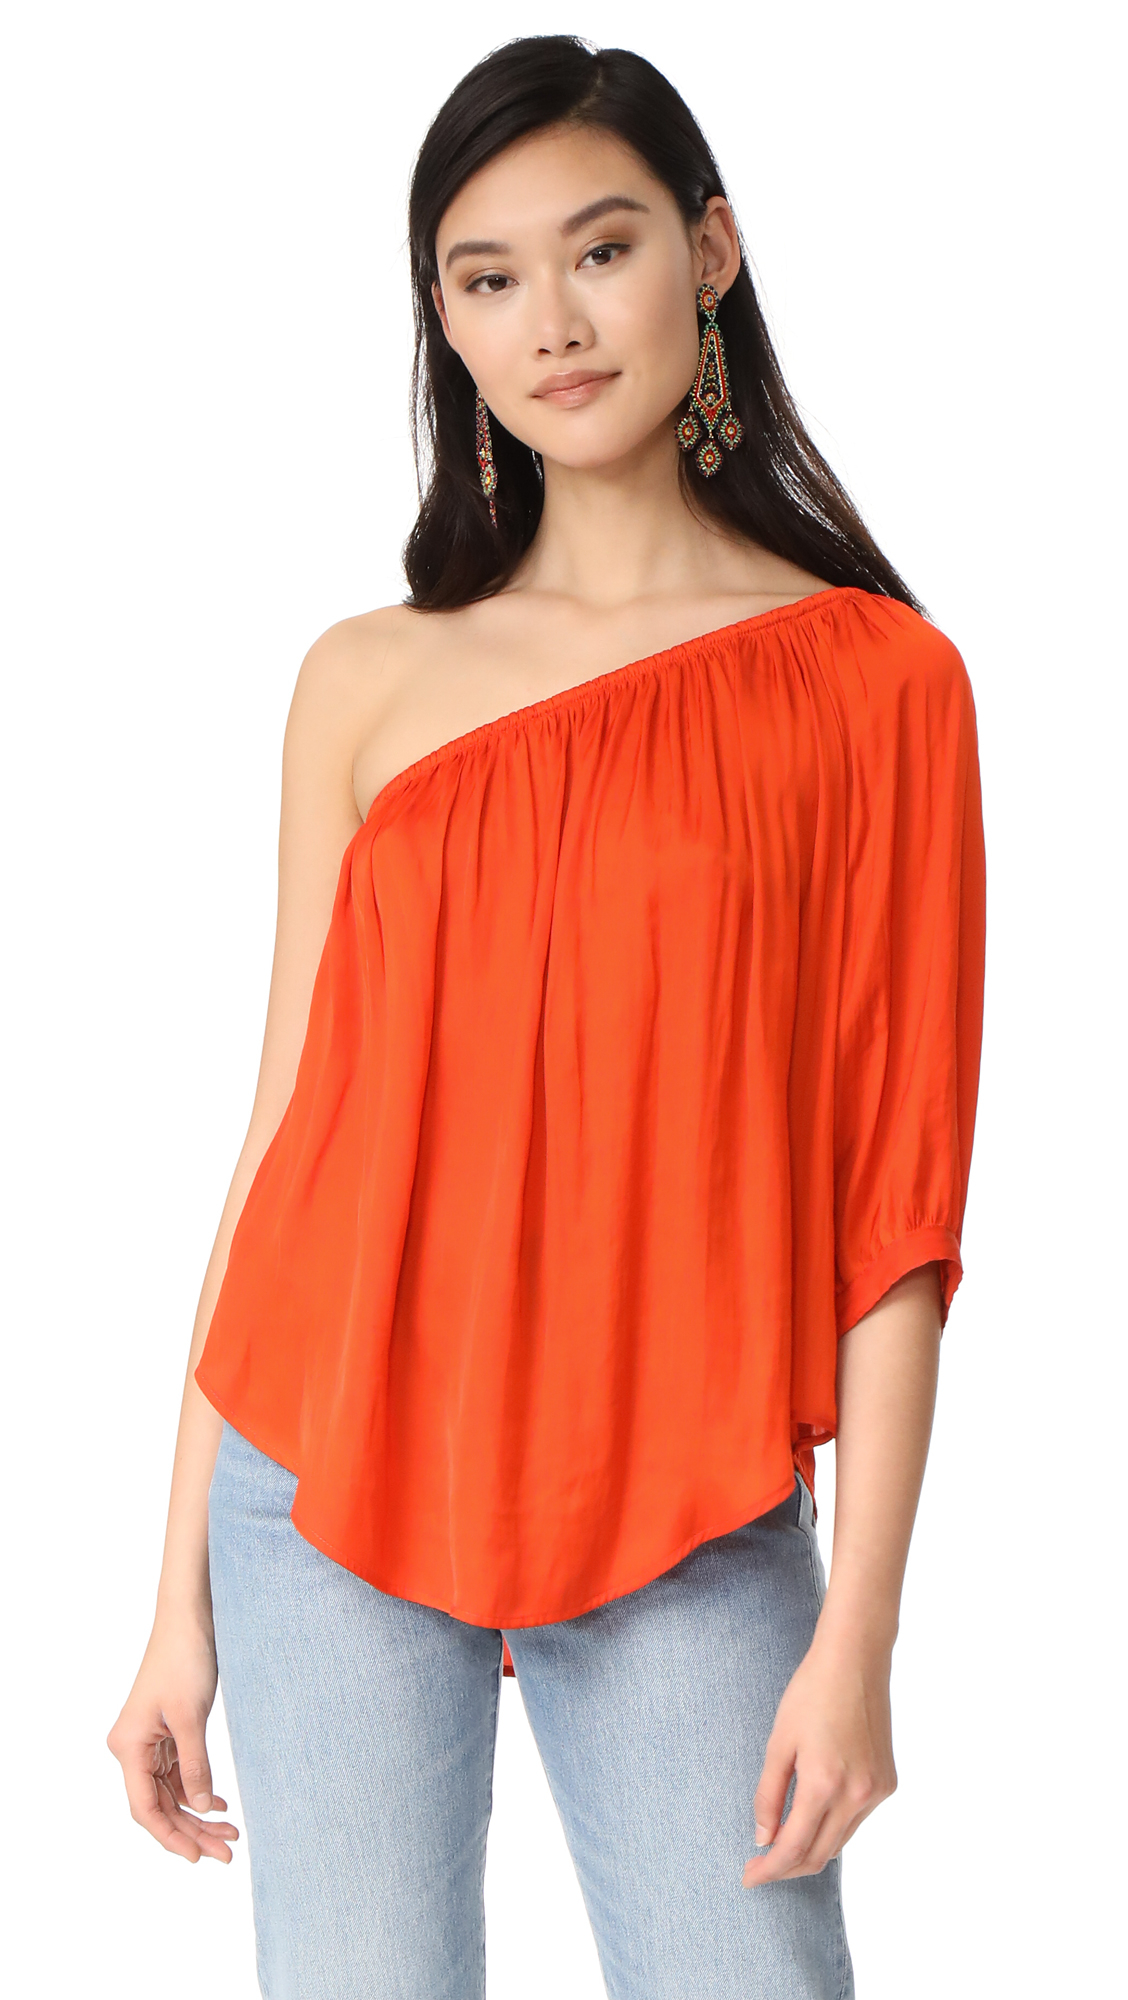 SMYTHE Single Shoulder Top - Poppy